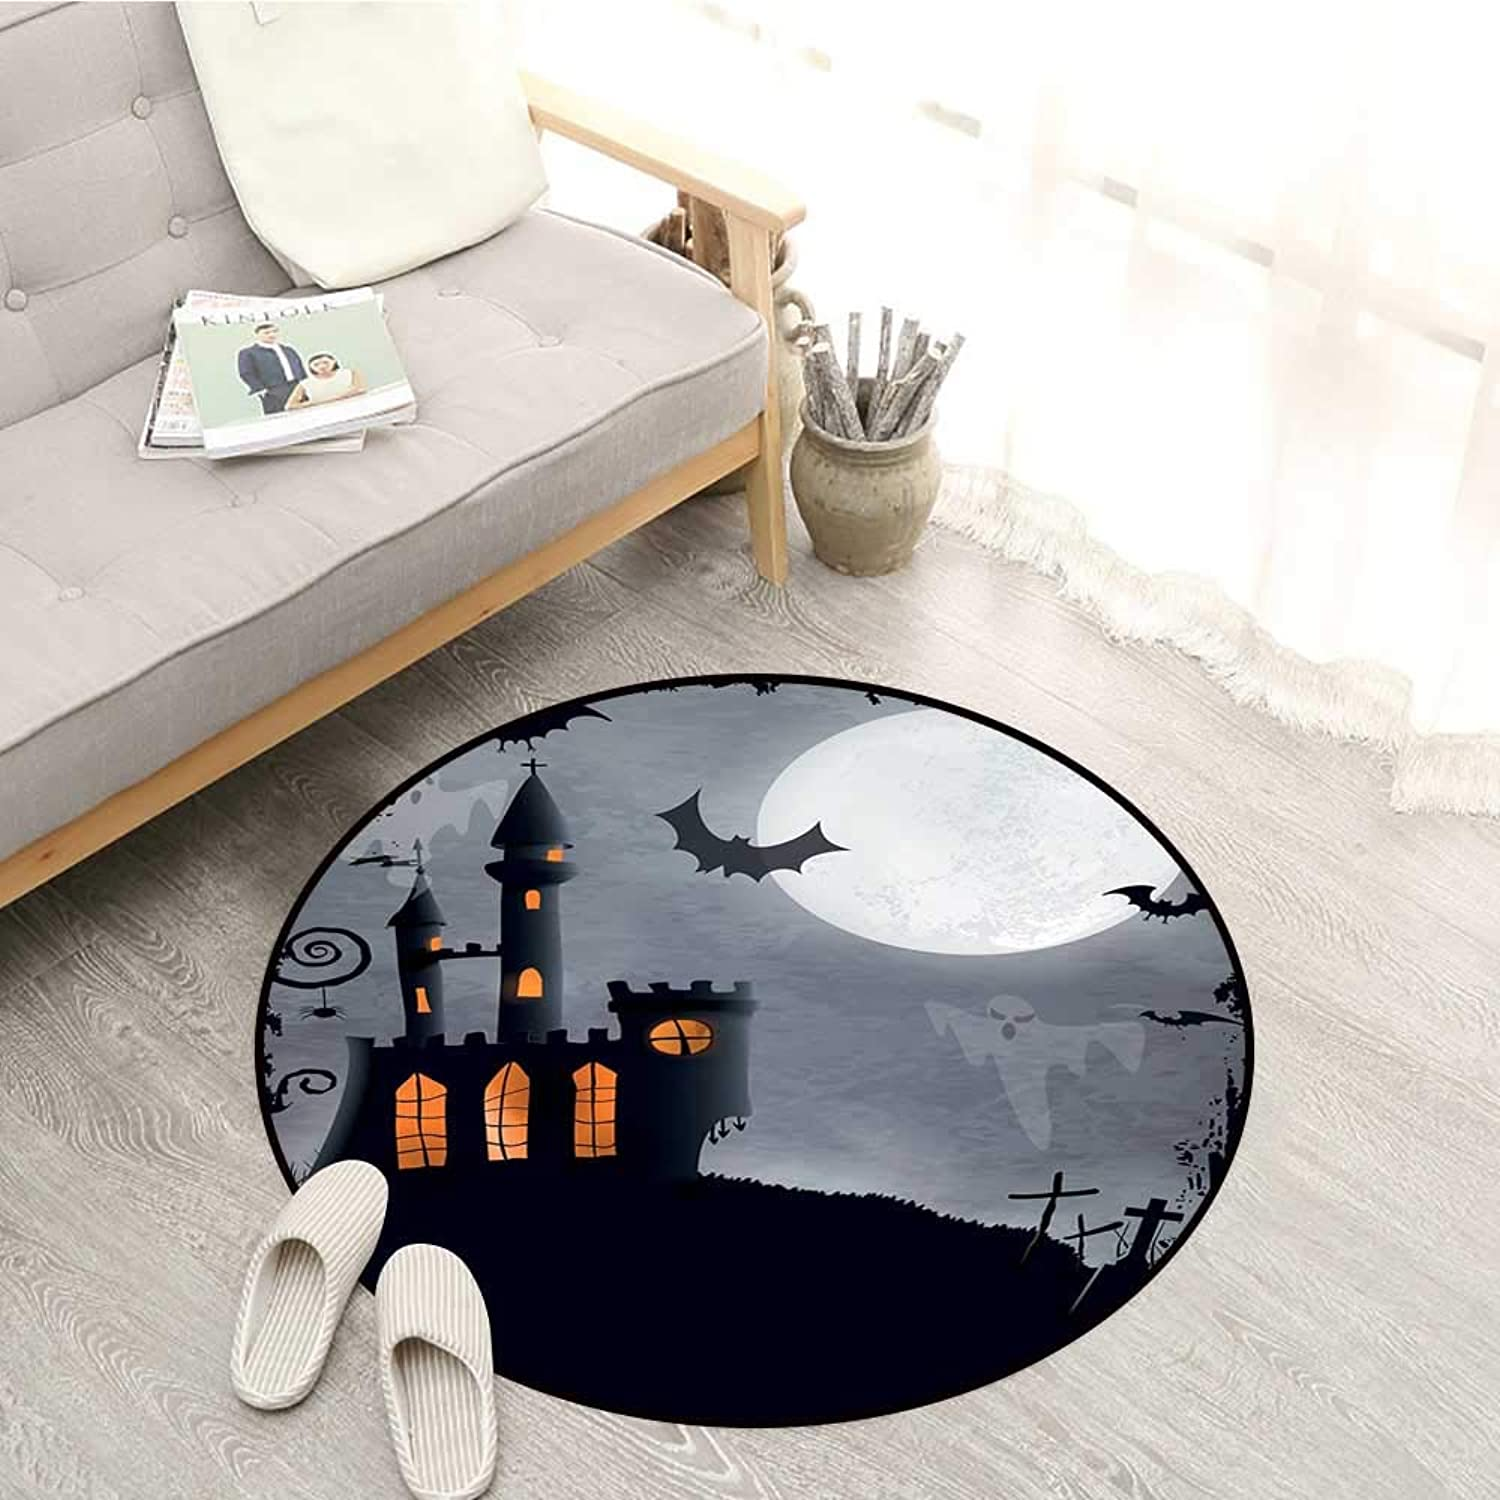 Vintage Halloween Skid-Resistant Rugs Halloween Themed Asymmetric Caste with Scary Bats and Ghosts Full Moon Sofa Coffee Table Mat 4'3  Black Grey